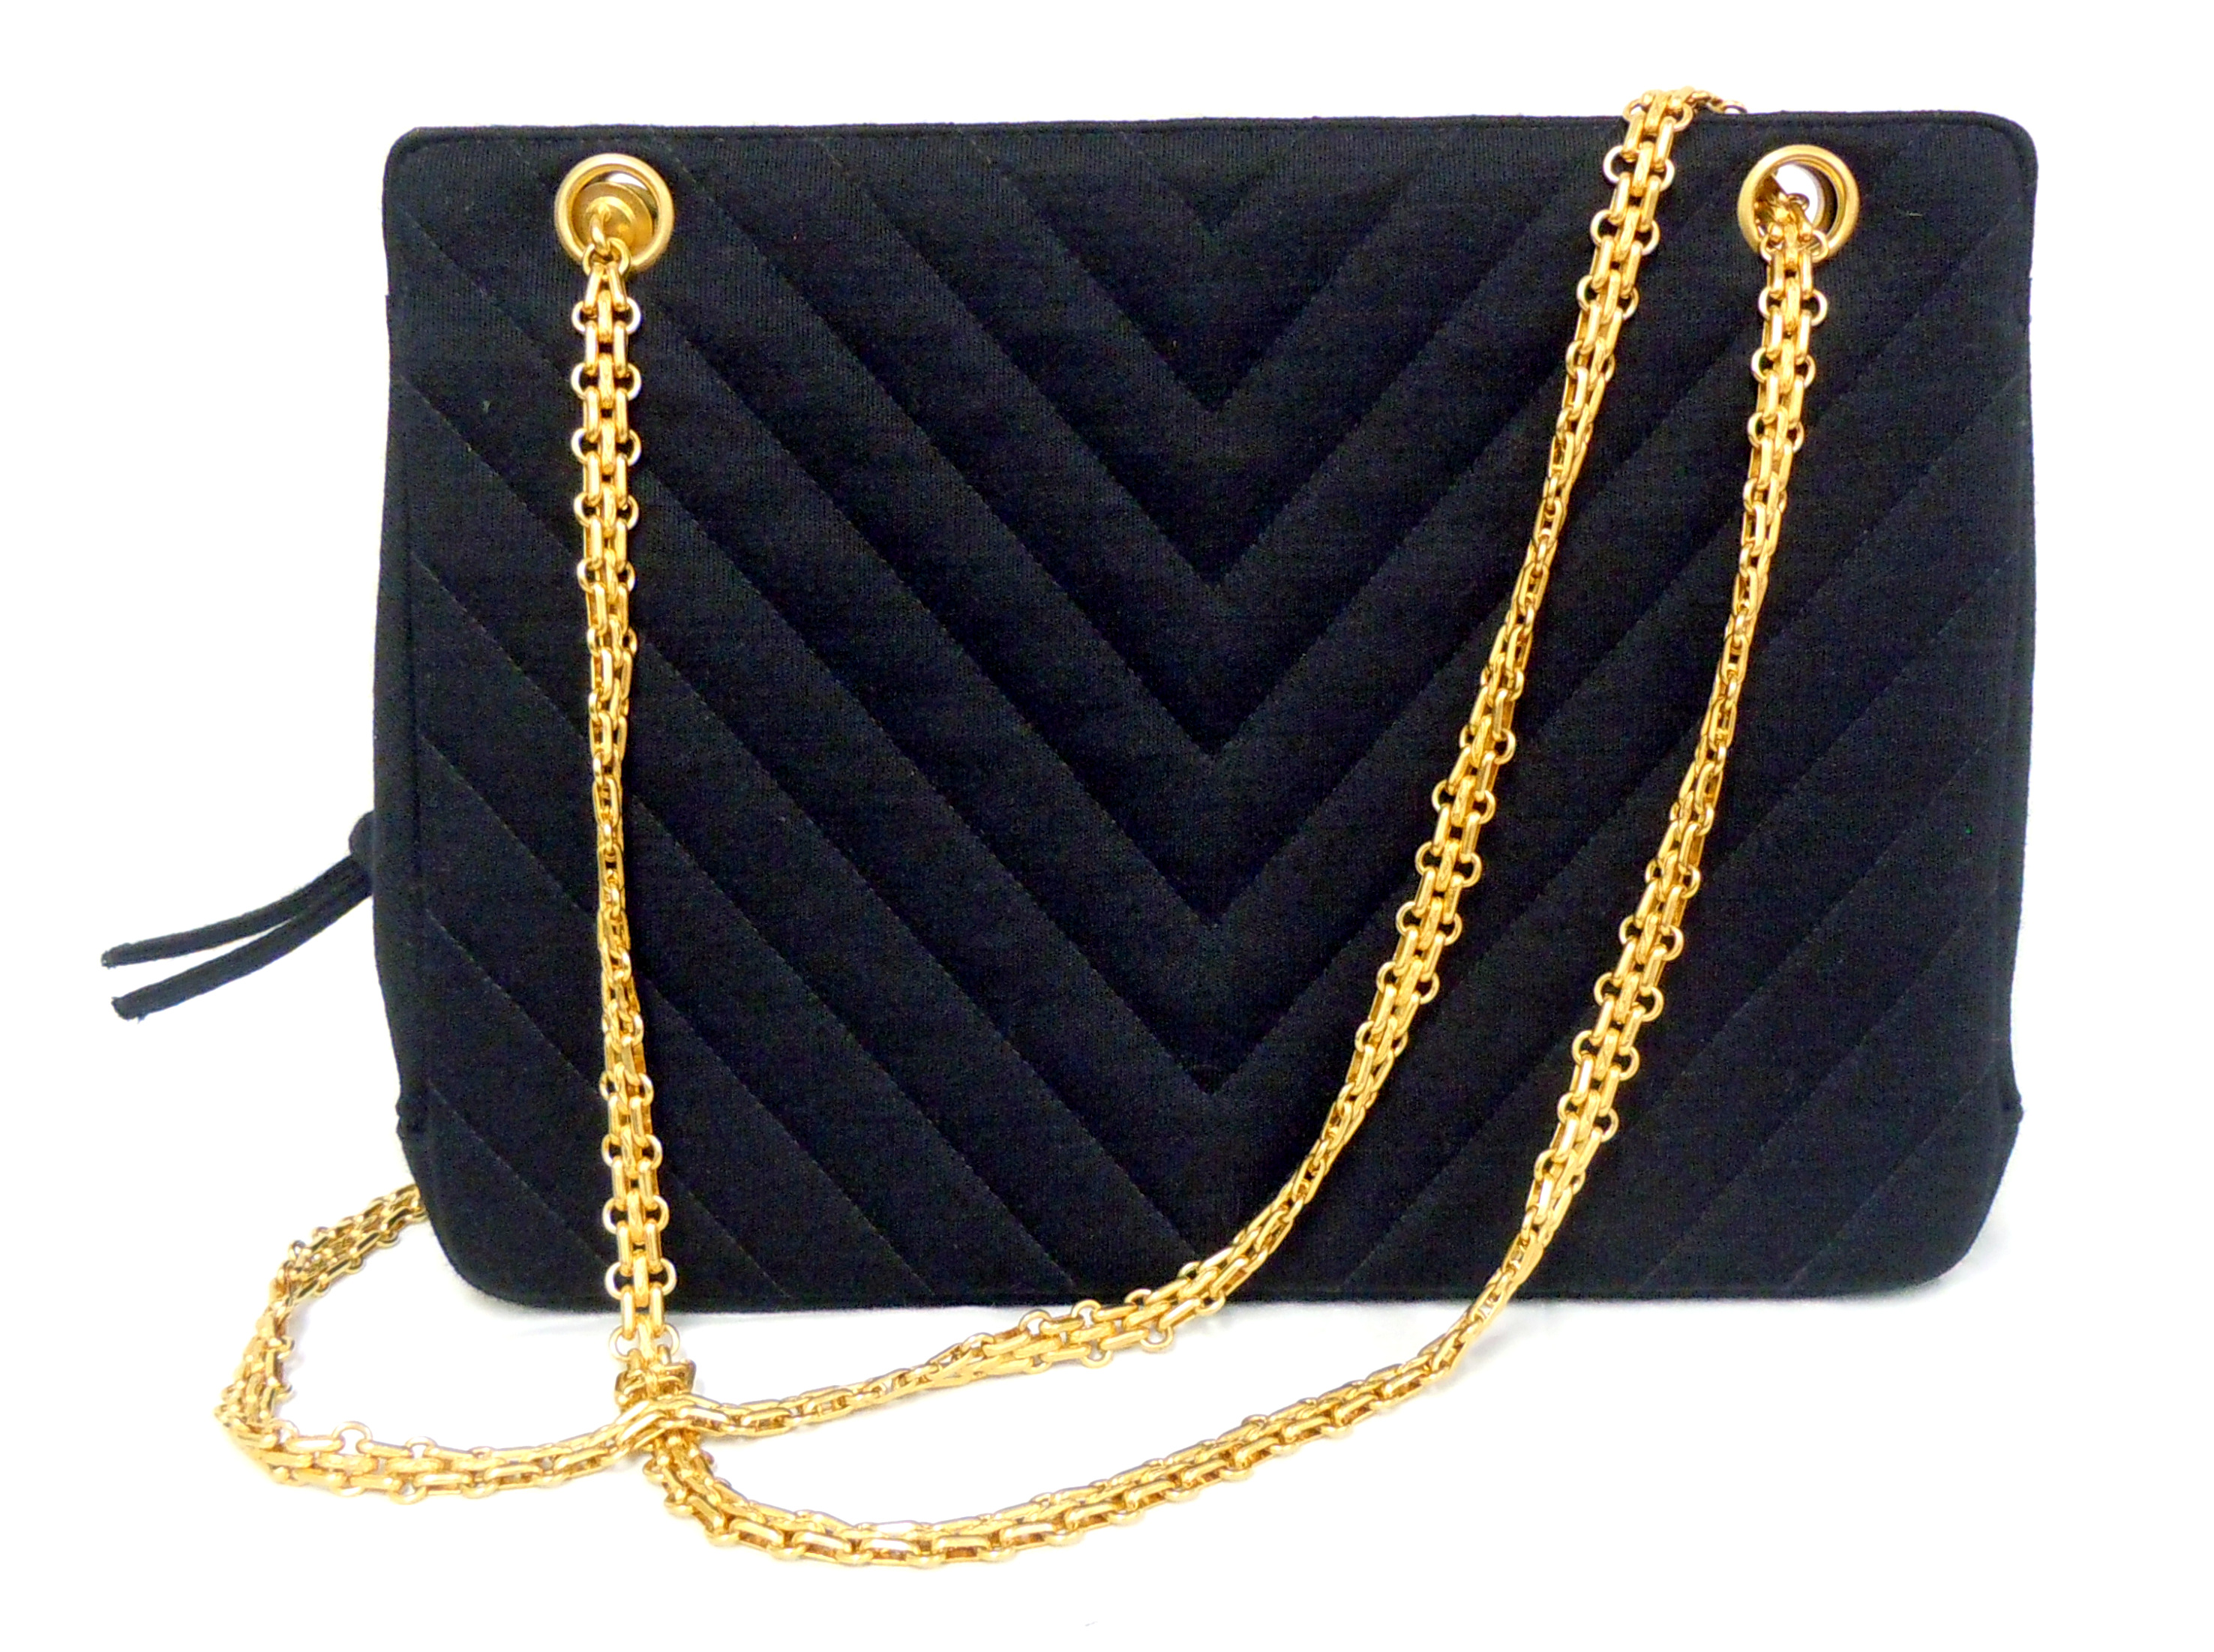 Chanel- Chevron Quilted Tote